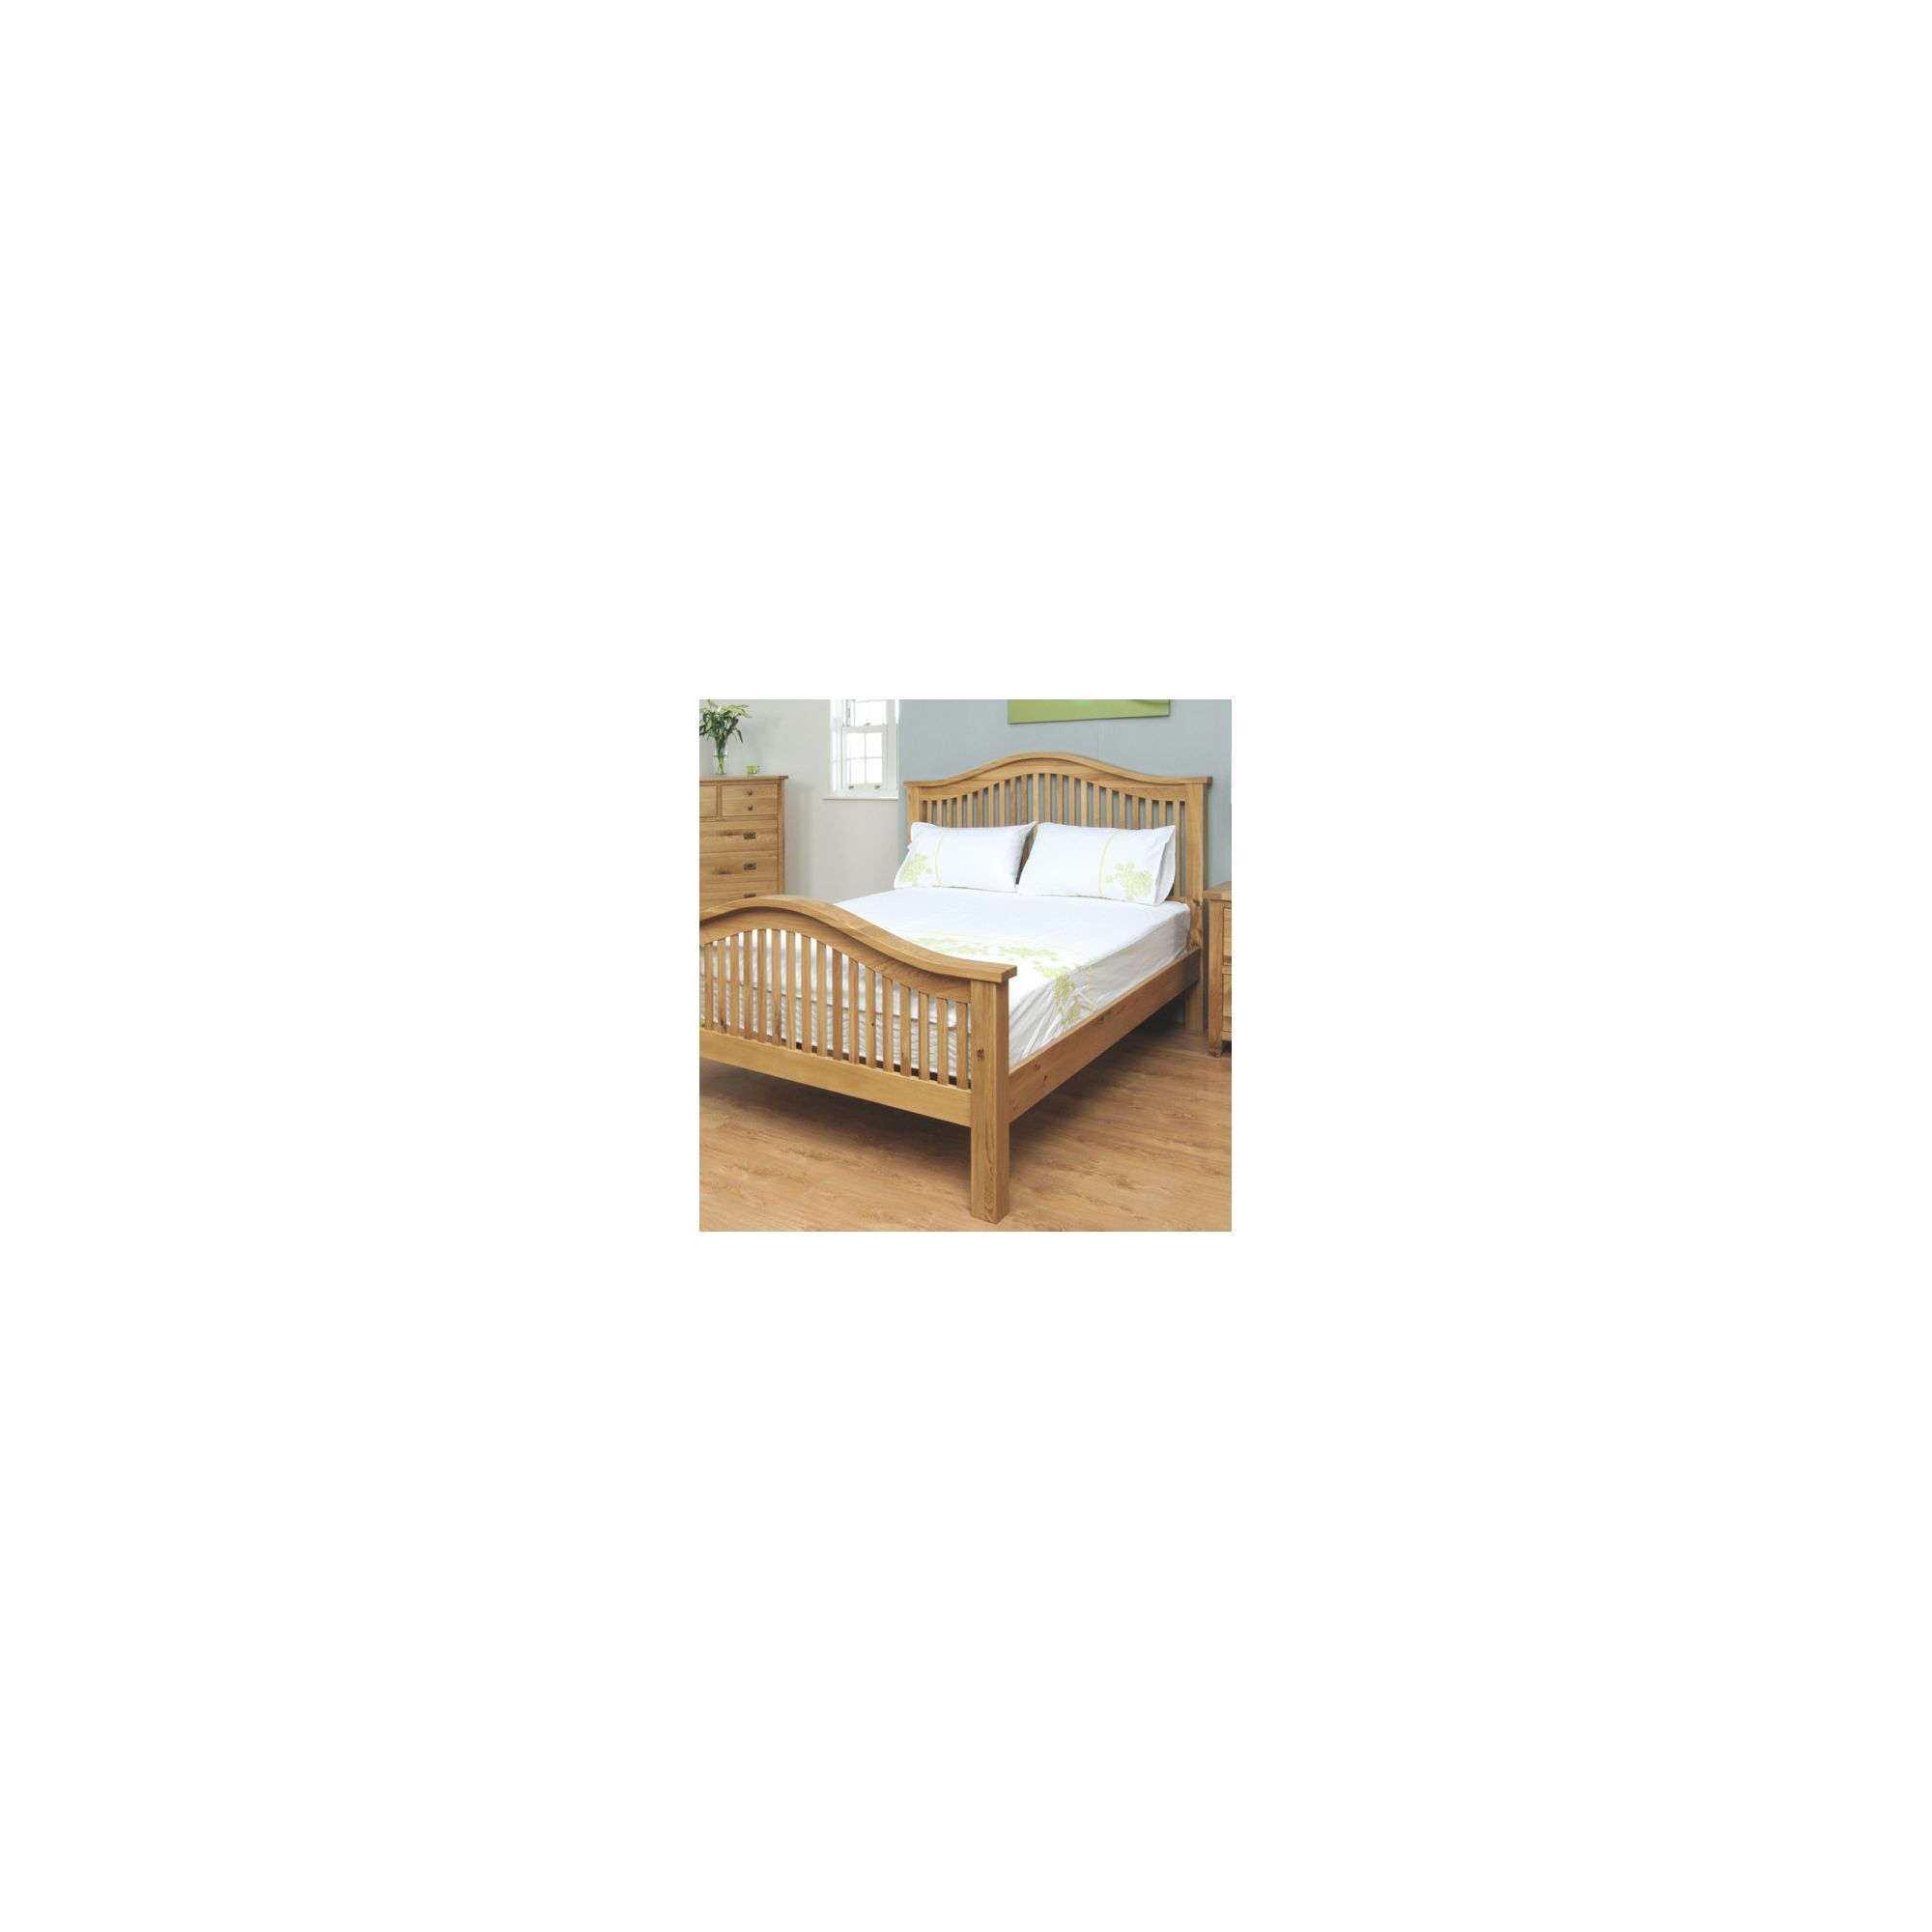 Elements Aylesbury Bed - King at Tesco Direct